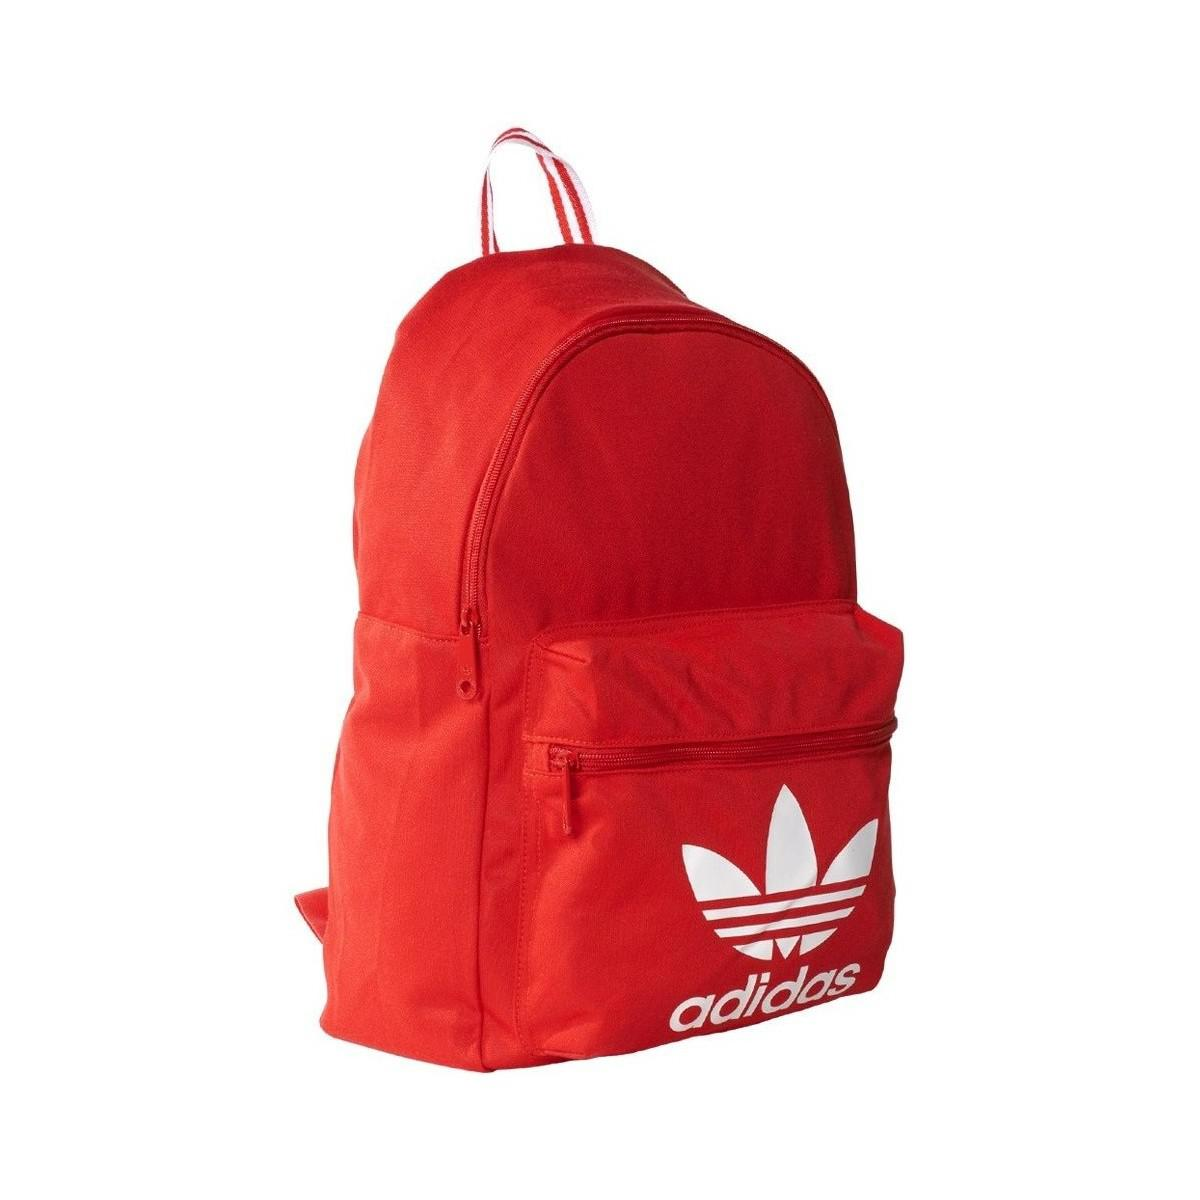 3fbf4816134e adidas Classic Tricot Men s Backpack In Red in Red - Lyst